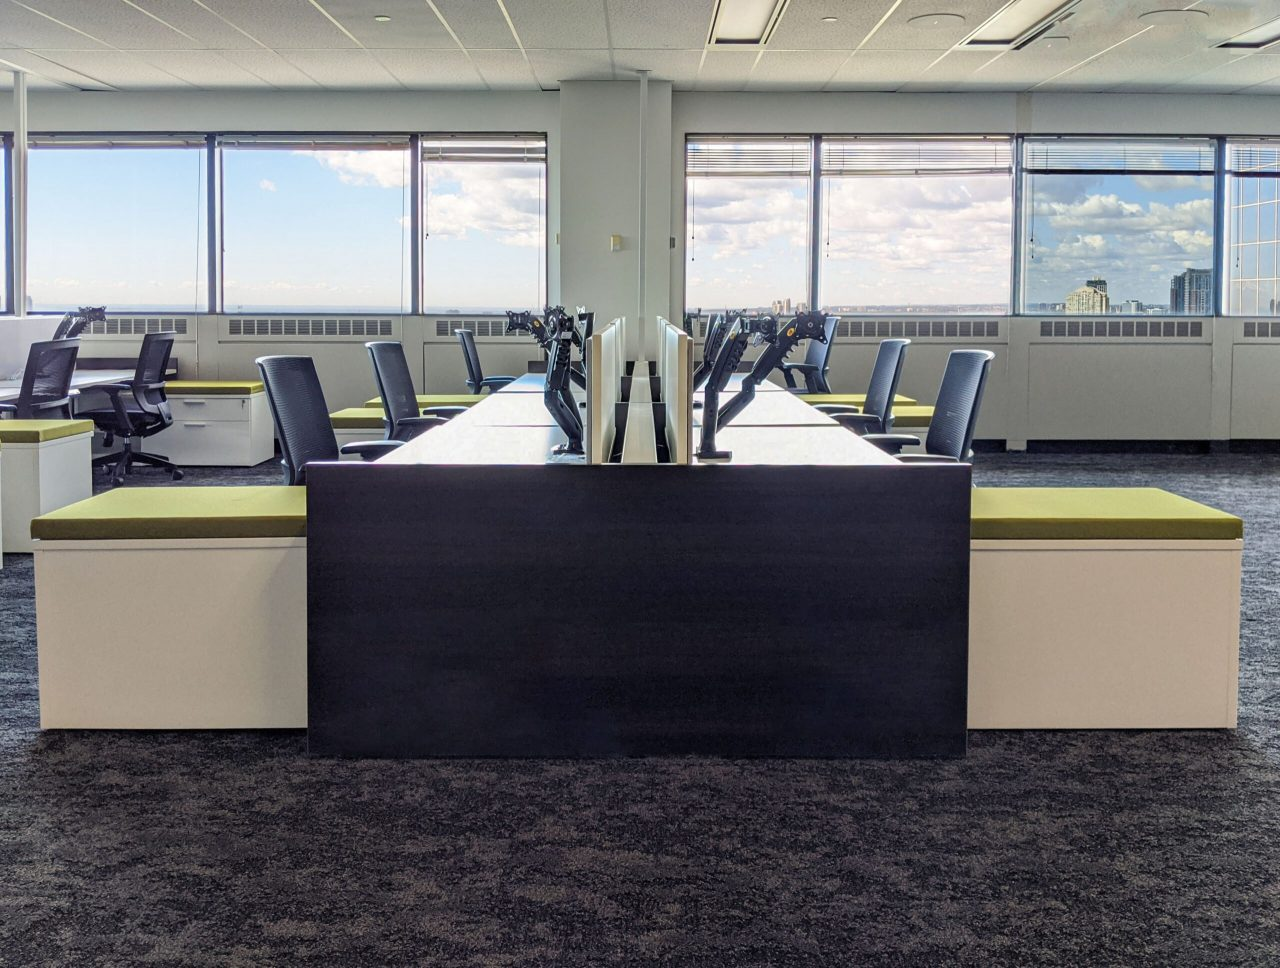 Benching with Sit-Stand Desks, Mixed Storage, Screens and Office Chairs